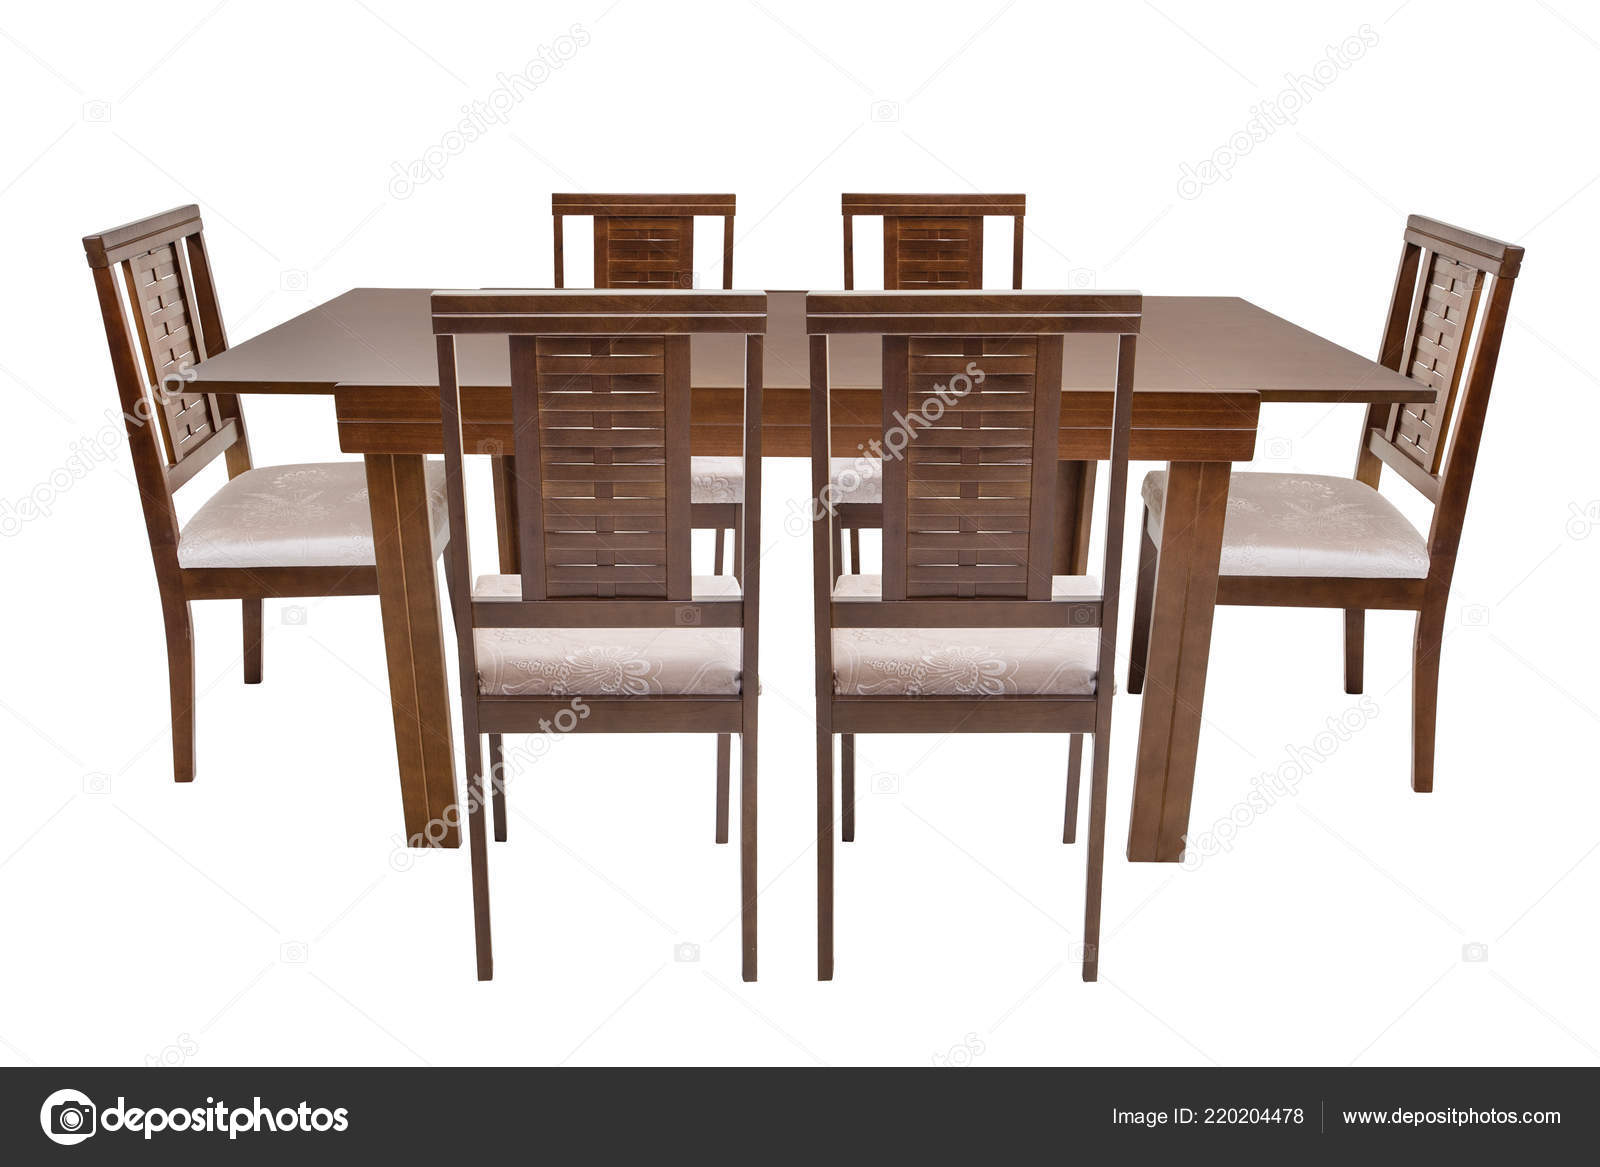 Table Six Chairs White Background Stock Photo C Anthonypaz 220204478